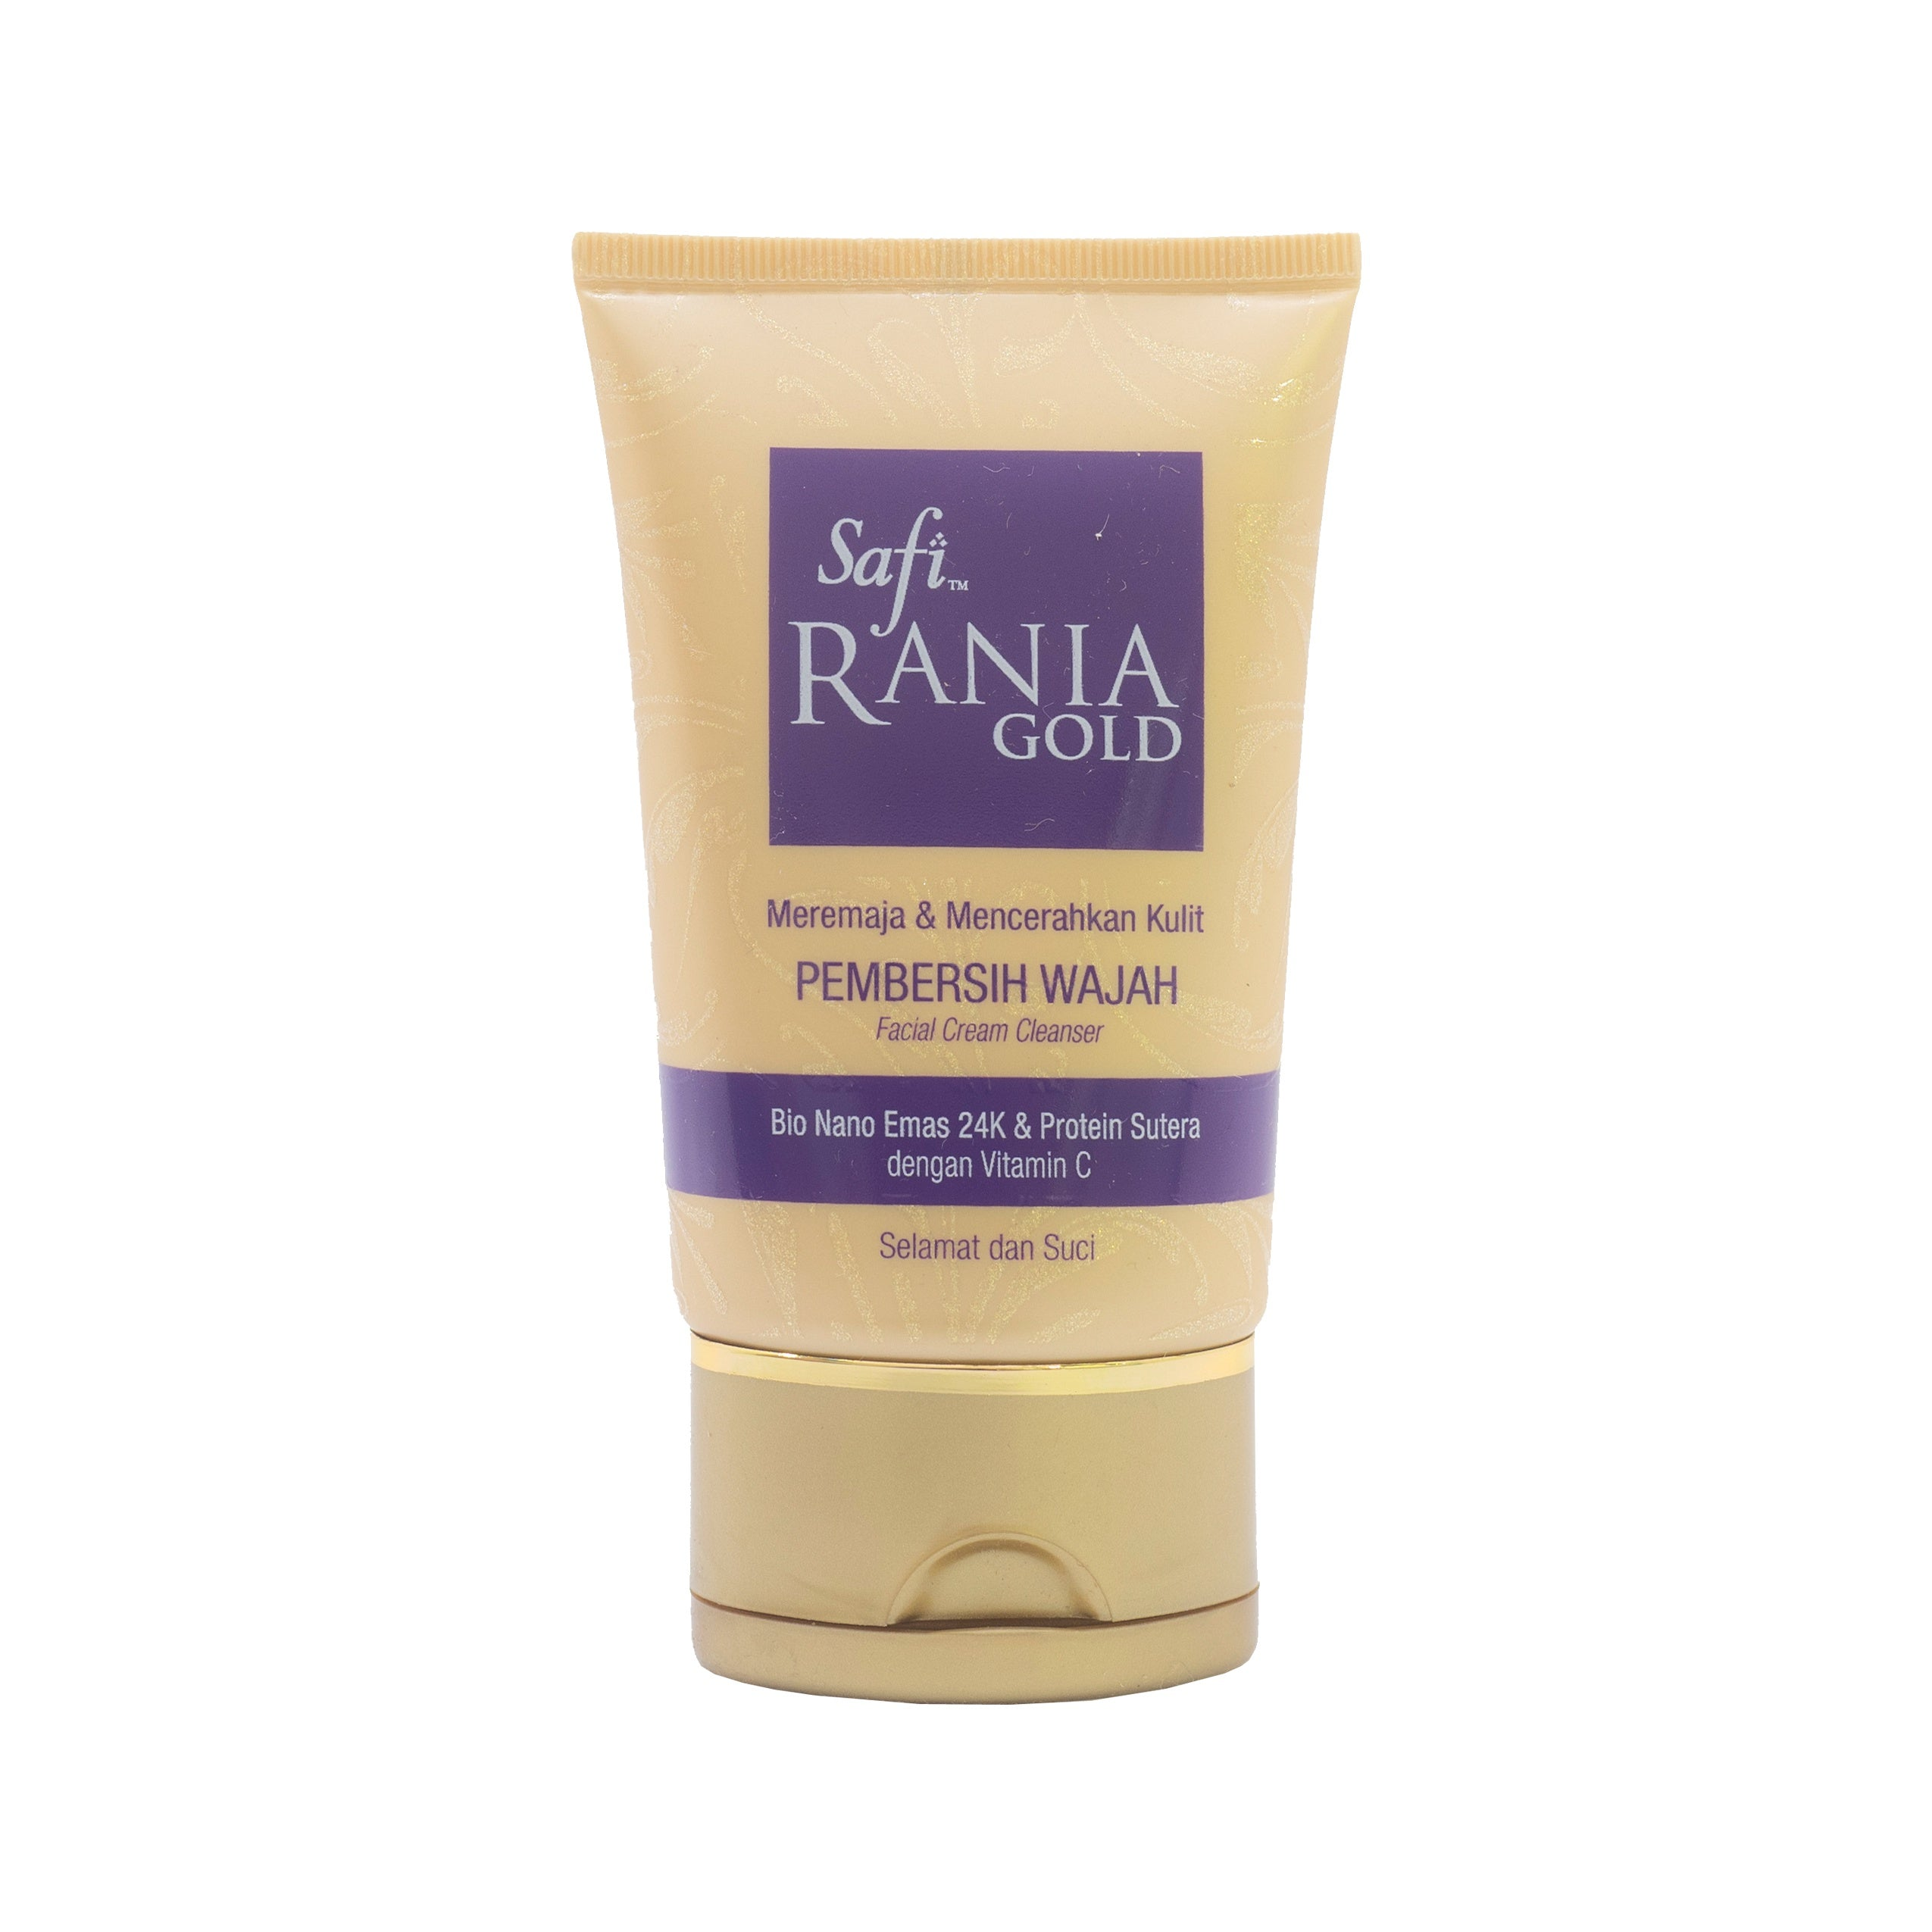 Safi, Rania Gold, Facial Cream Cleanser, 50 g